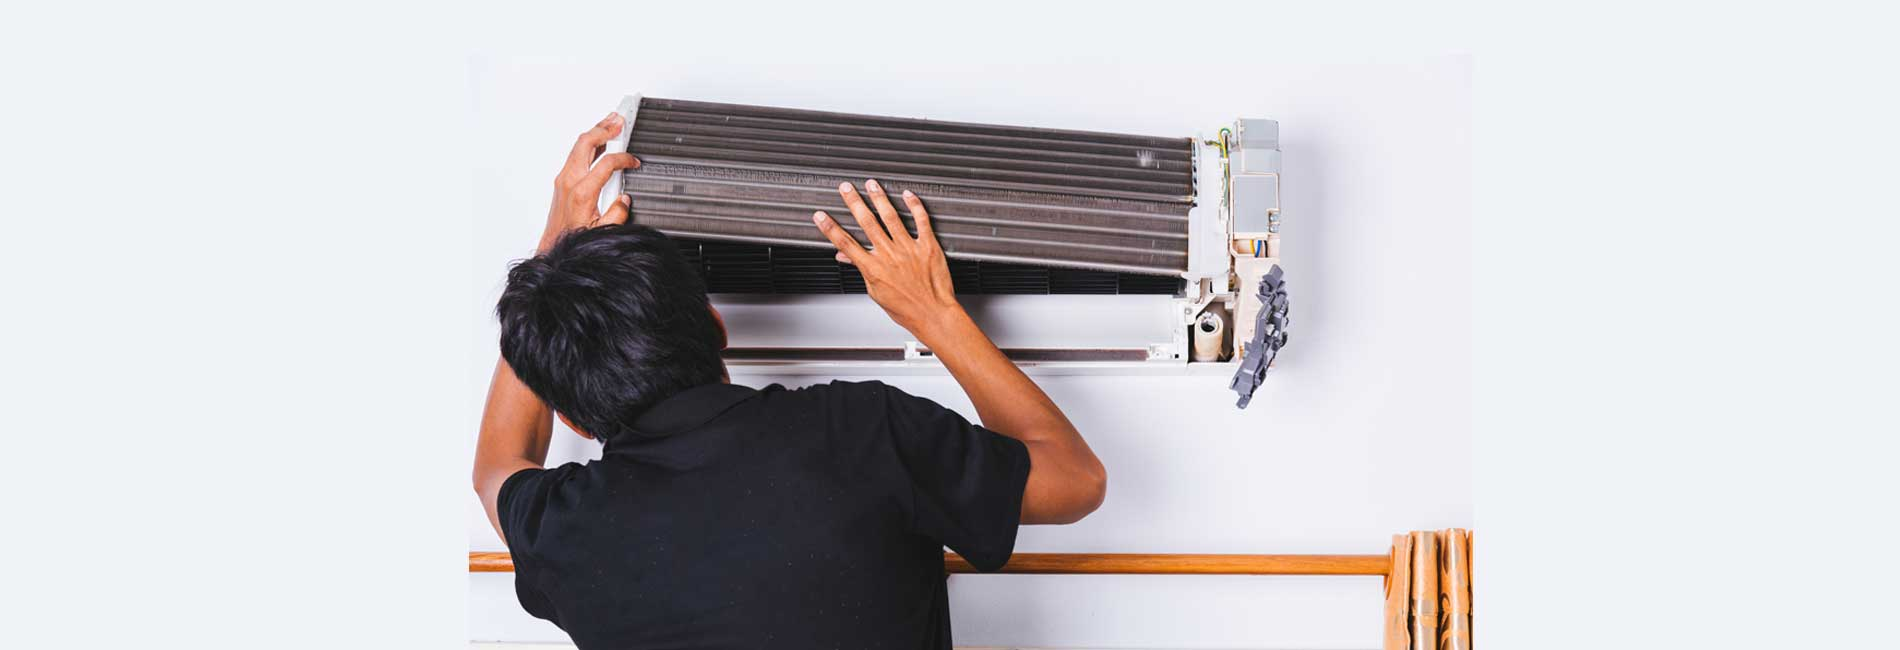 Whirlpool AC Uninstallation and Installation in Besant Nagar